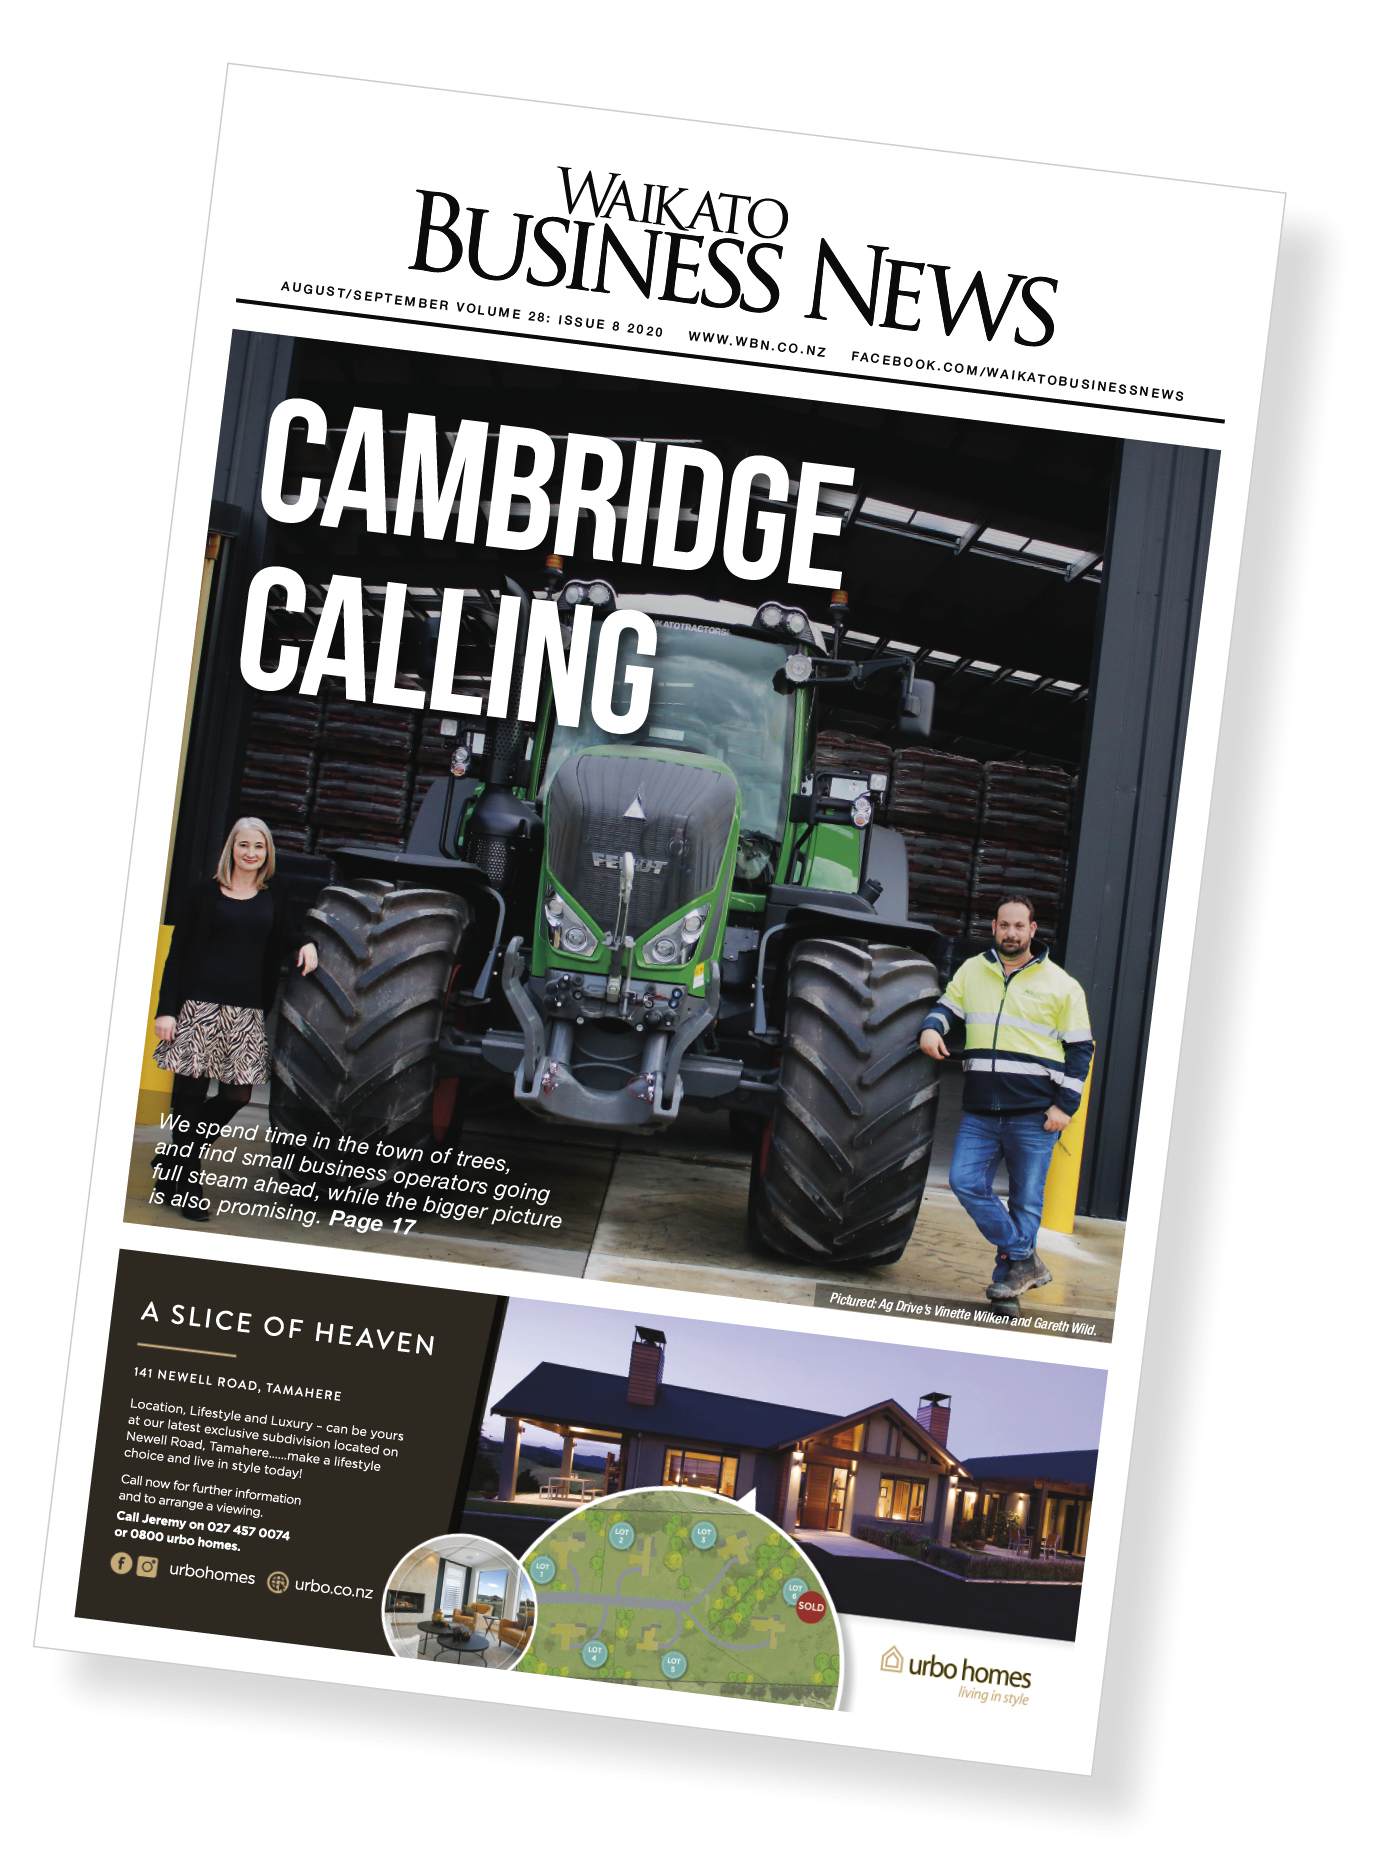 Waikato Business News August/September cover